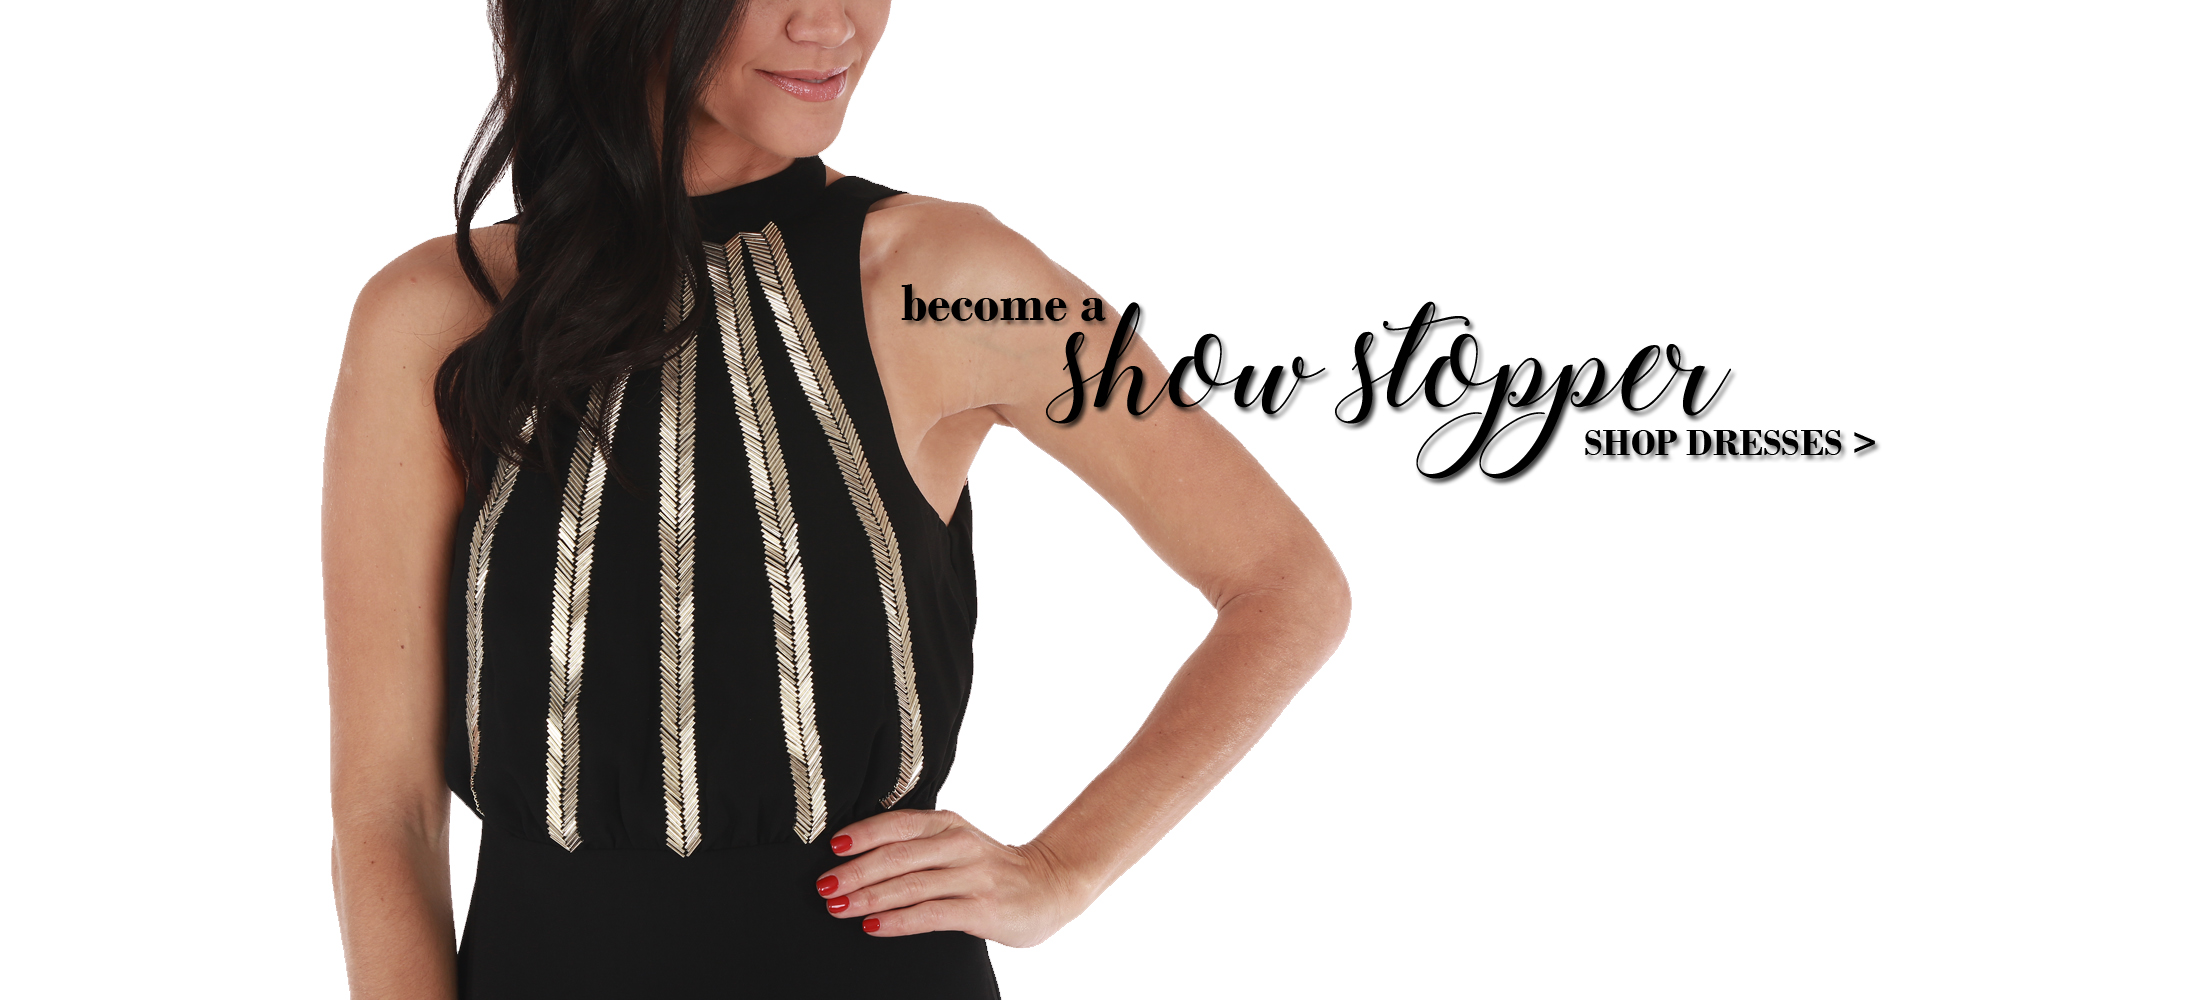 become a showstopper SHOP DRESSES >